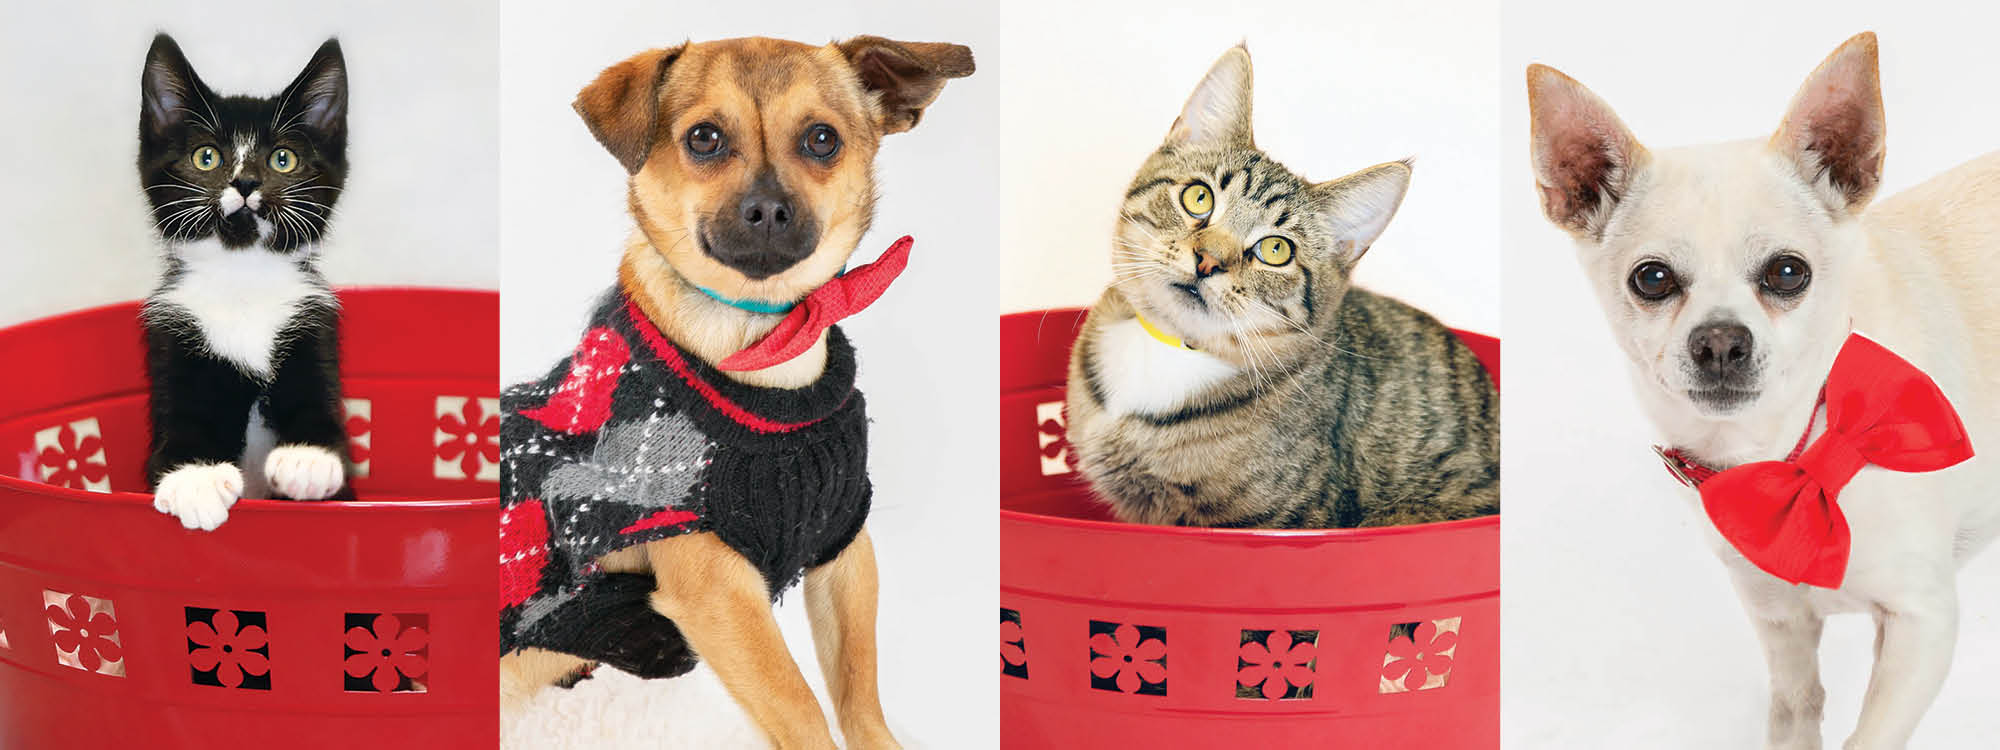 cats and dogs with red bowties